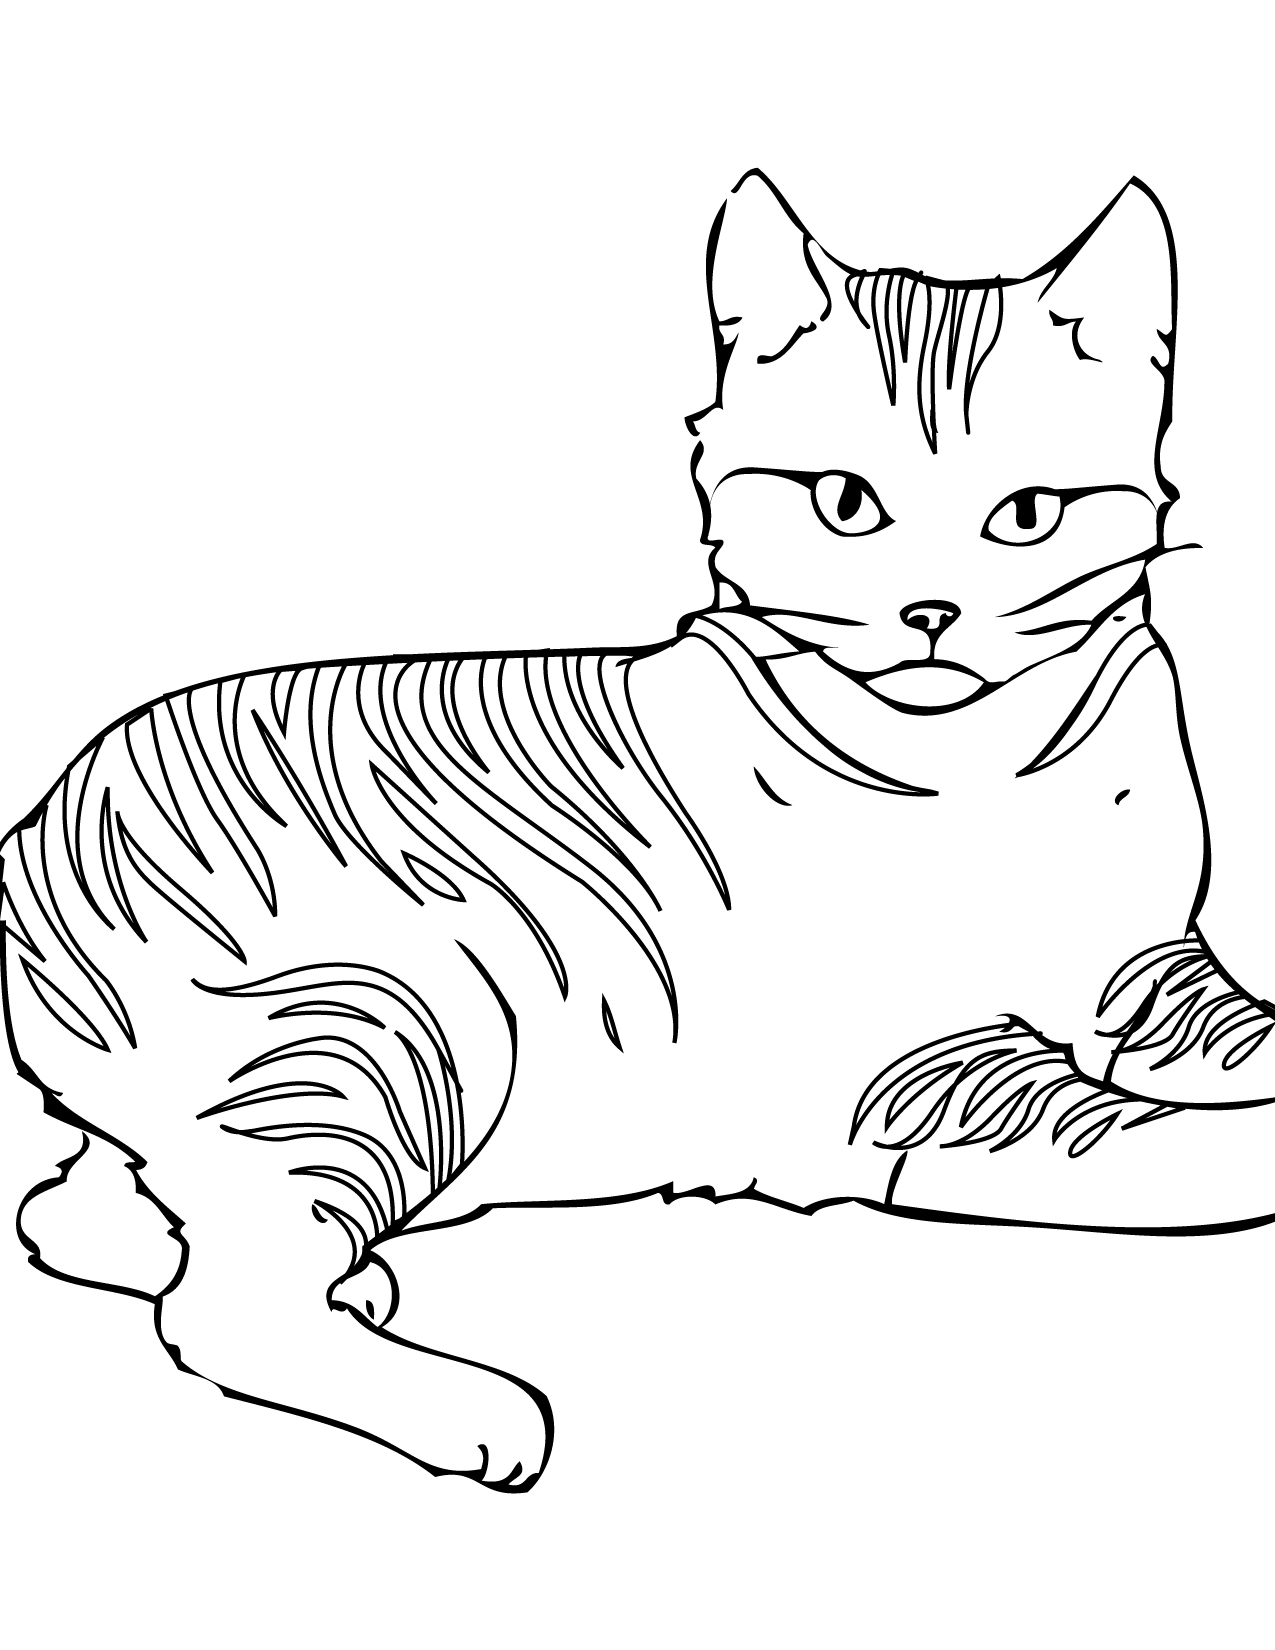 Cat Printable Coloring Pages Free Printable Cat Coloring Pages For Kids